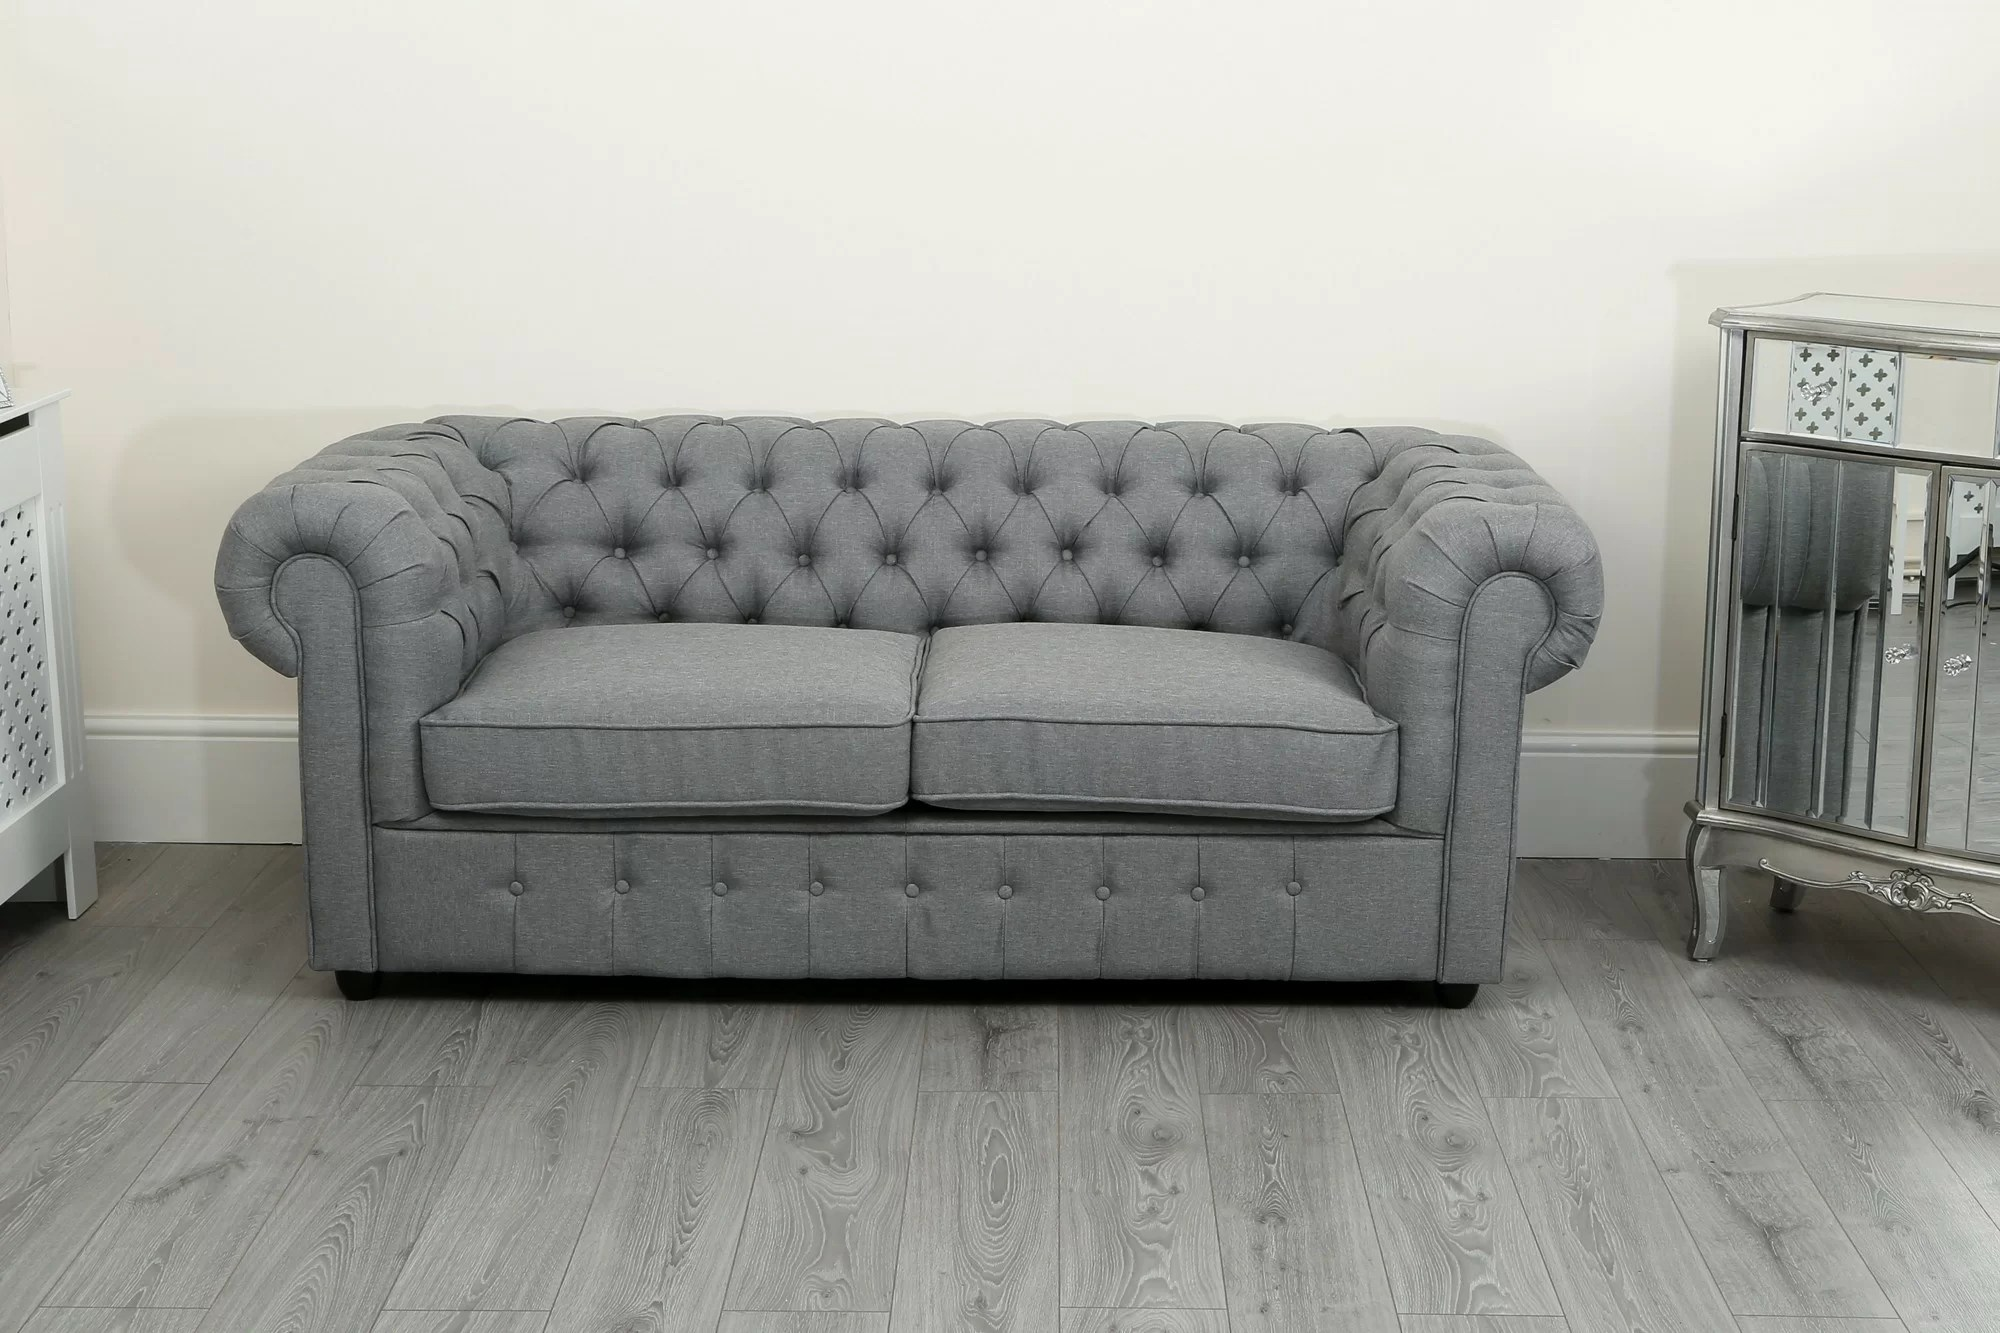 Chesterfield Sofa Online Uk Dunston 2 Seater Chesterfield Sofa